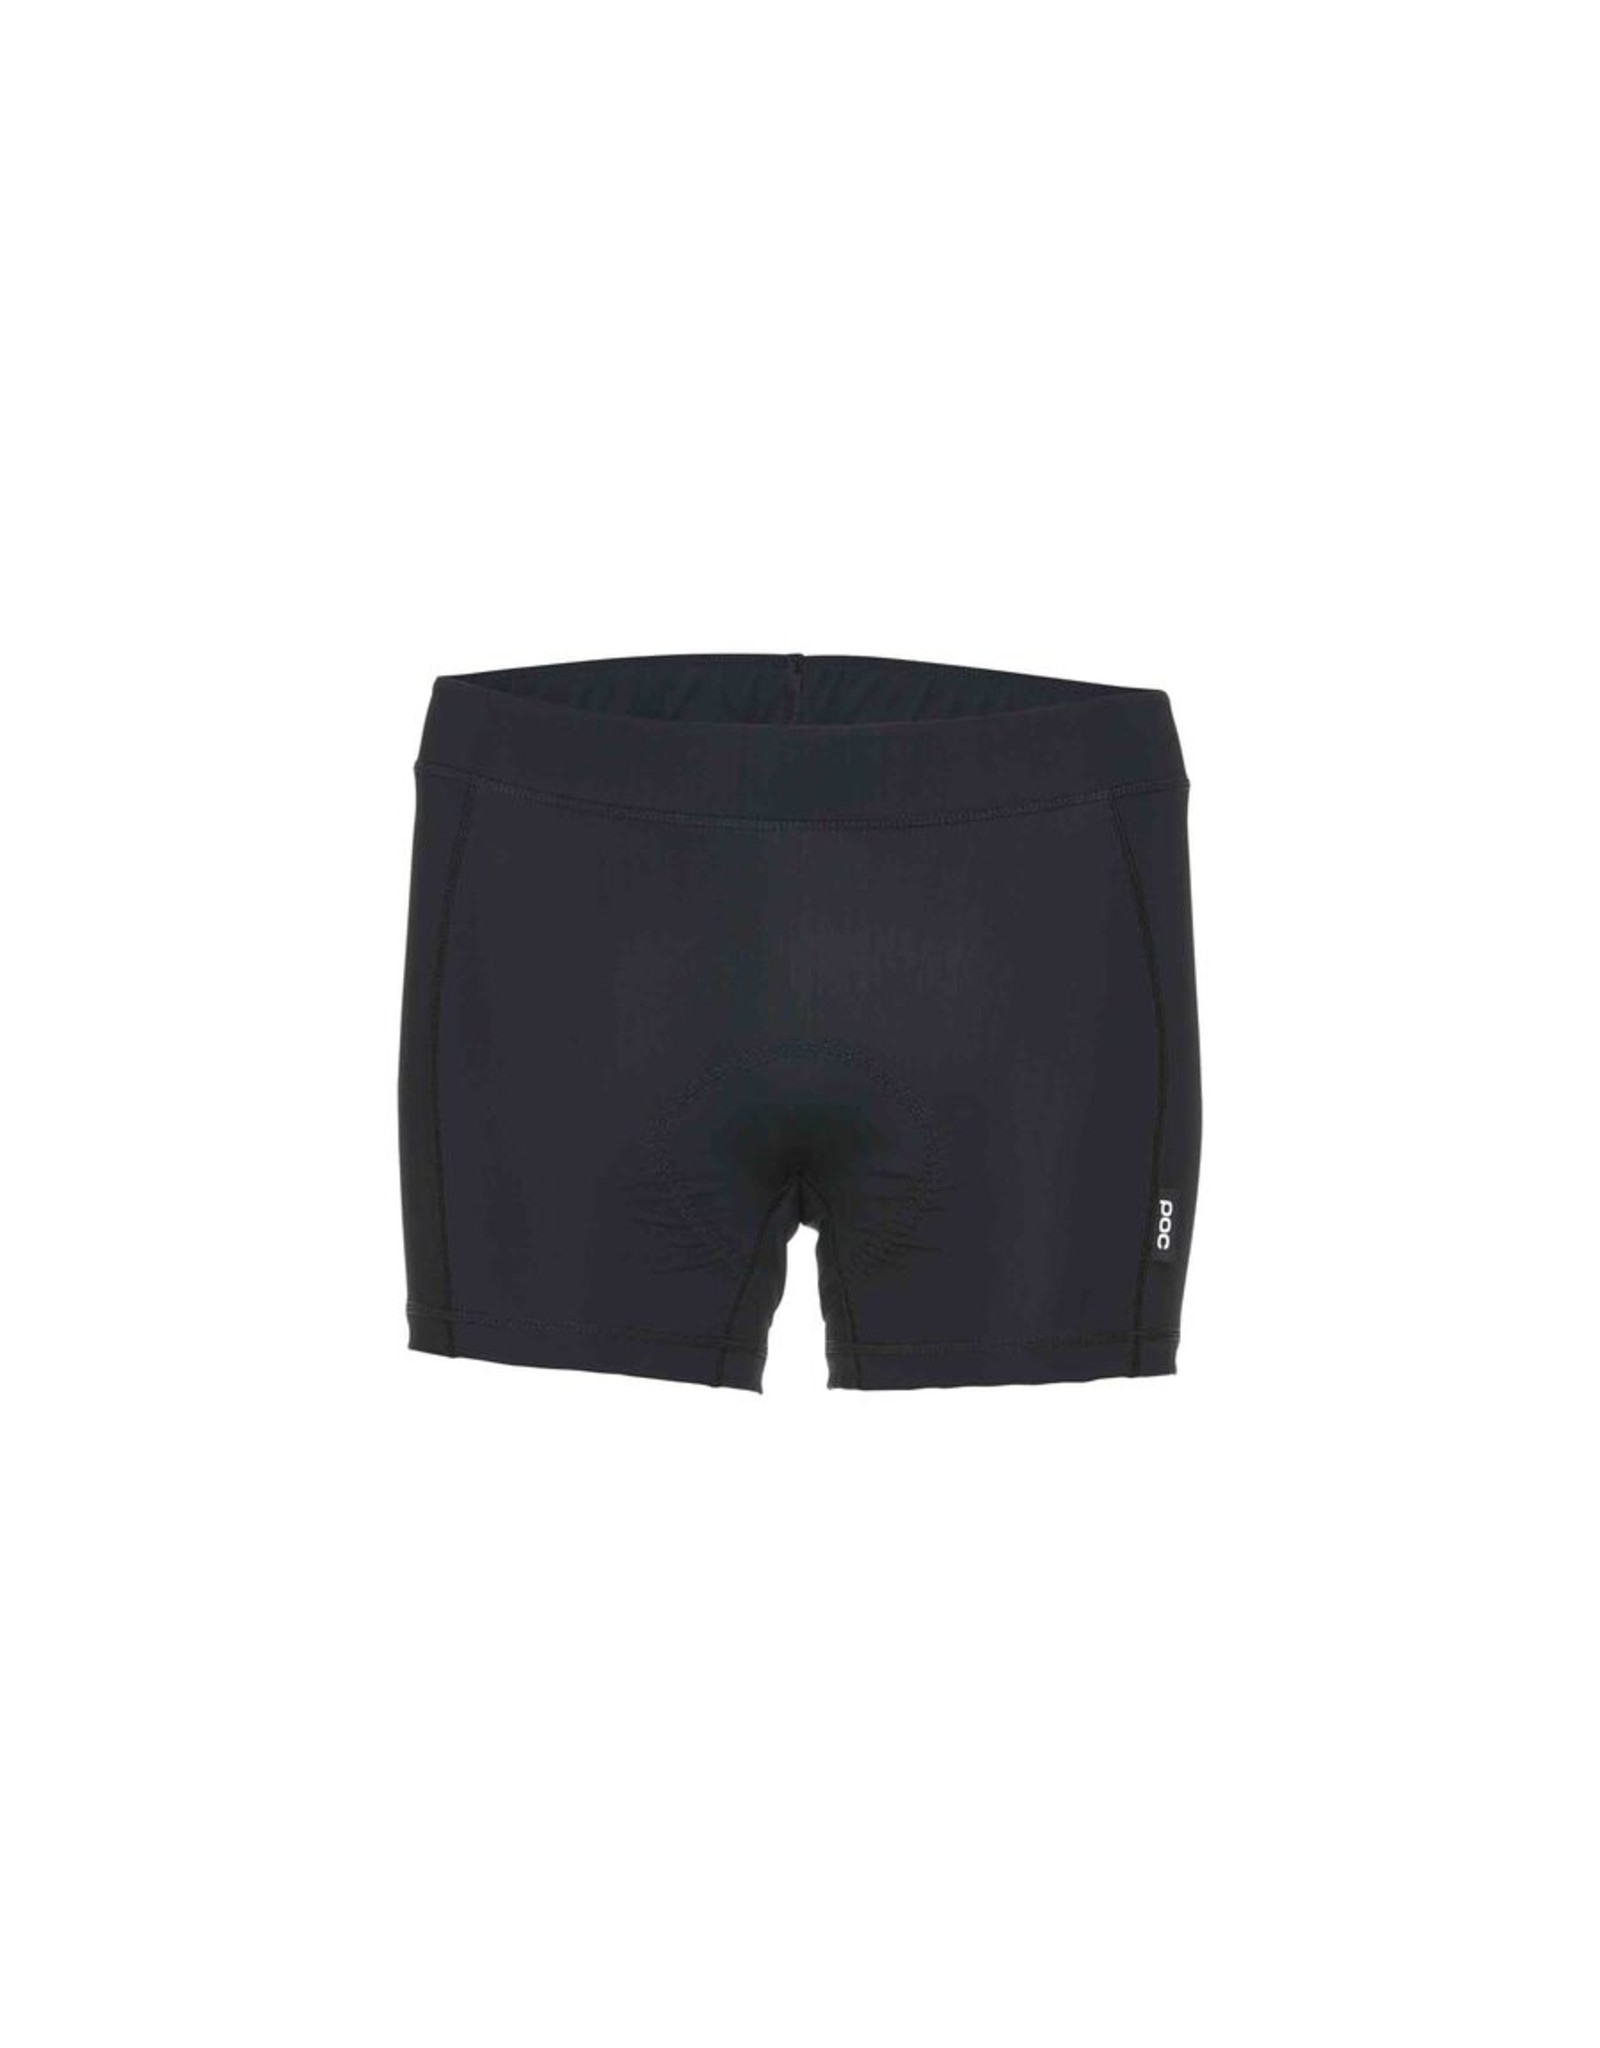 POC POC Essential Women's Short